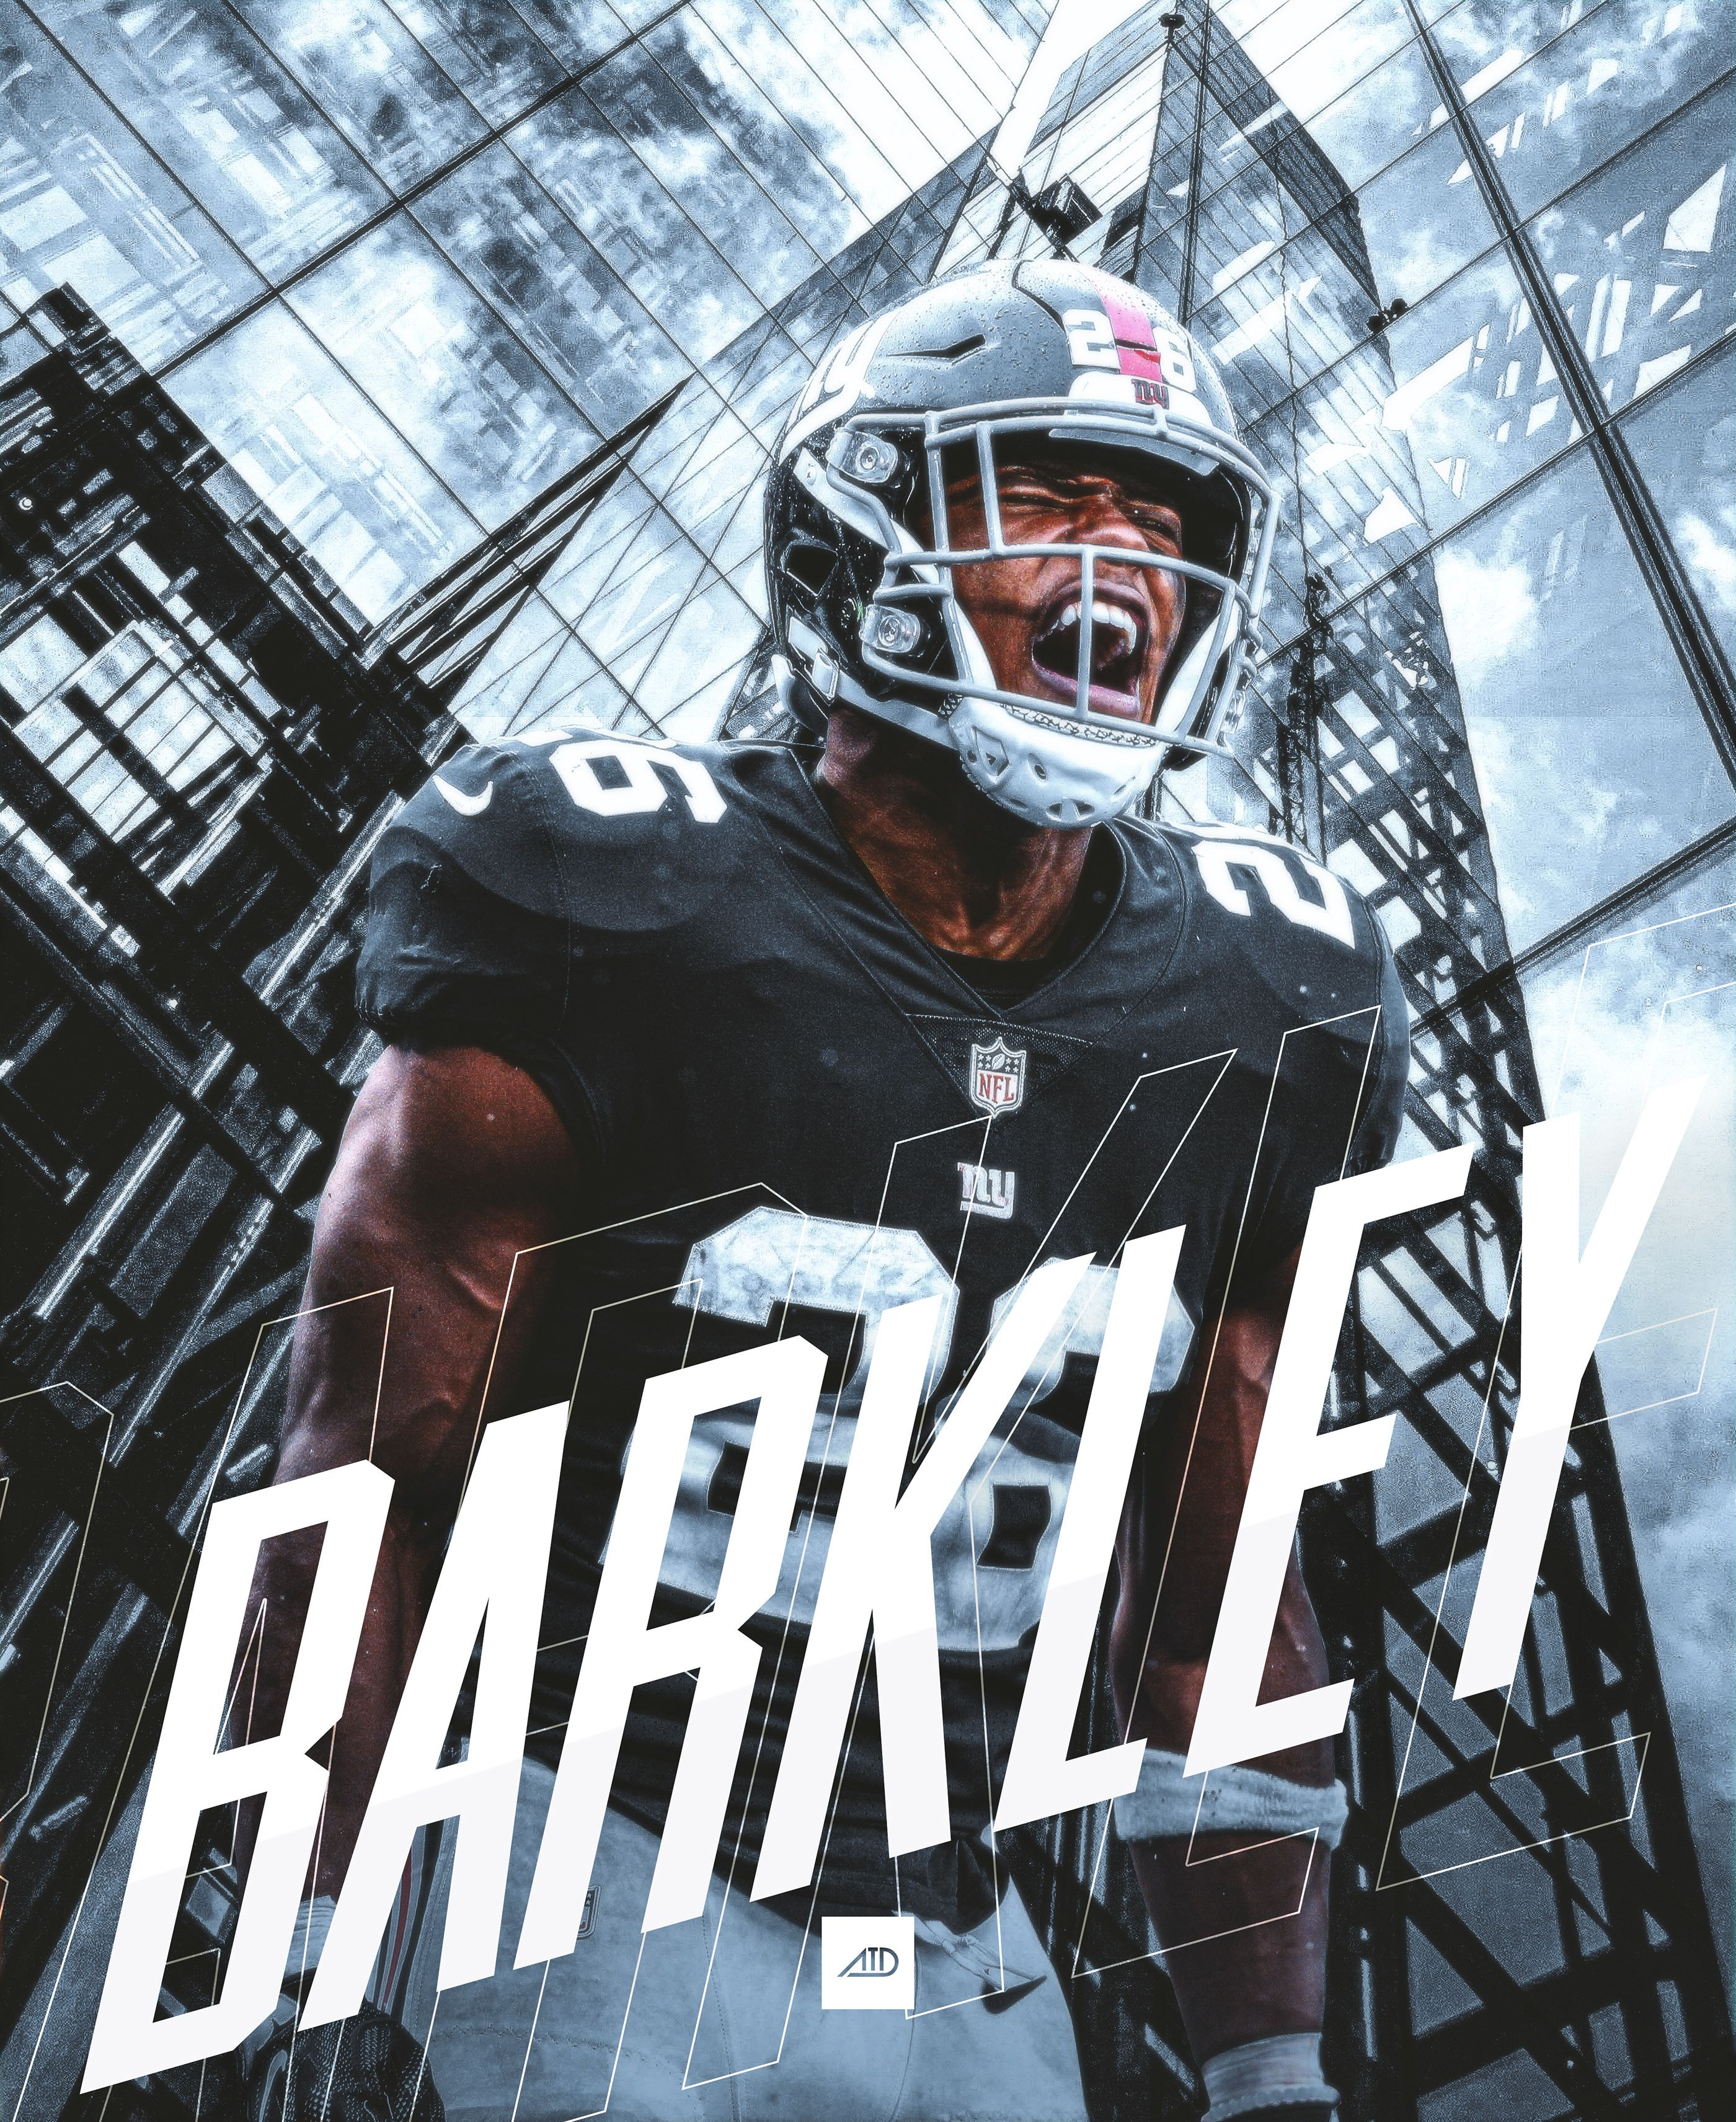 NFL Artwork Saquon Barkley 'King of New York' Giants on